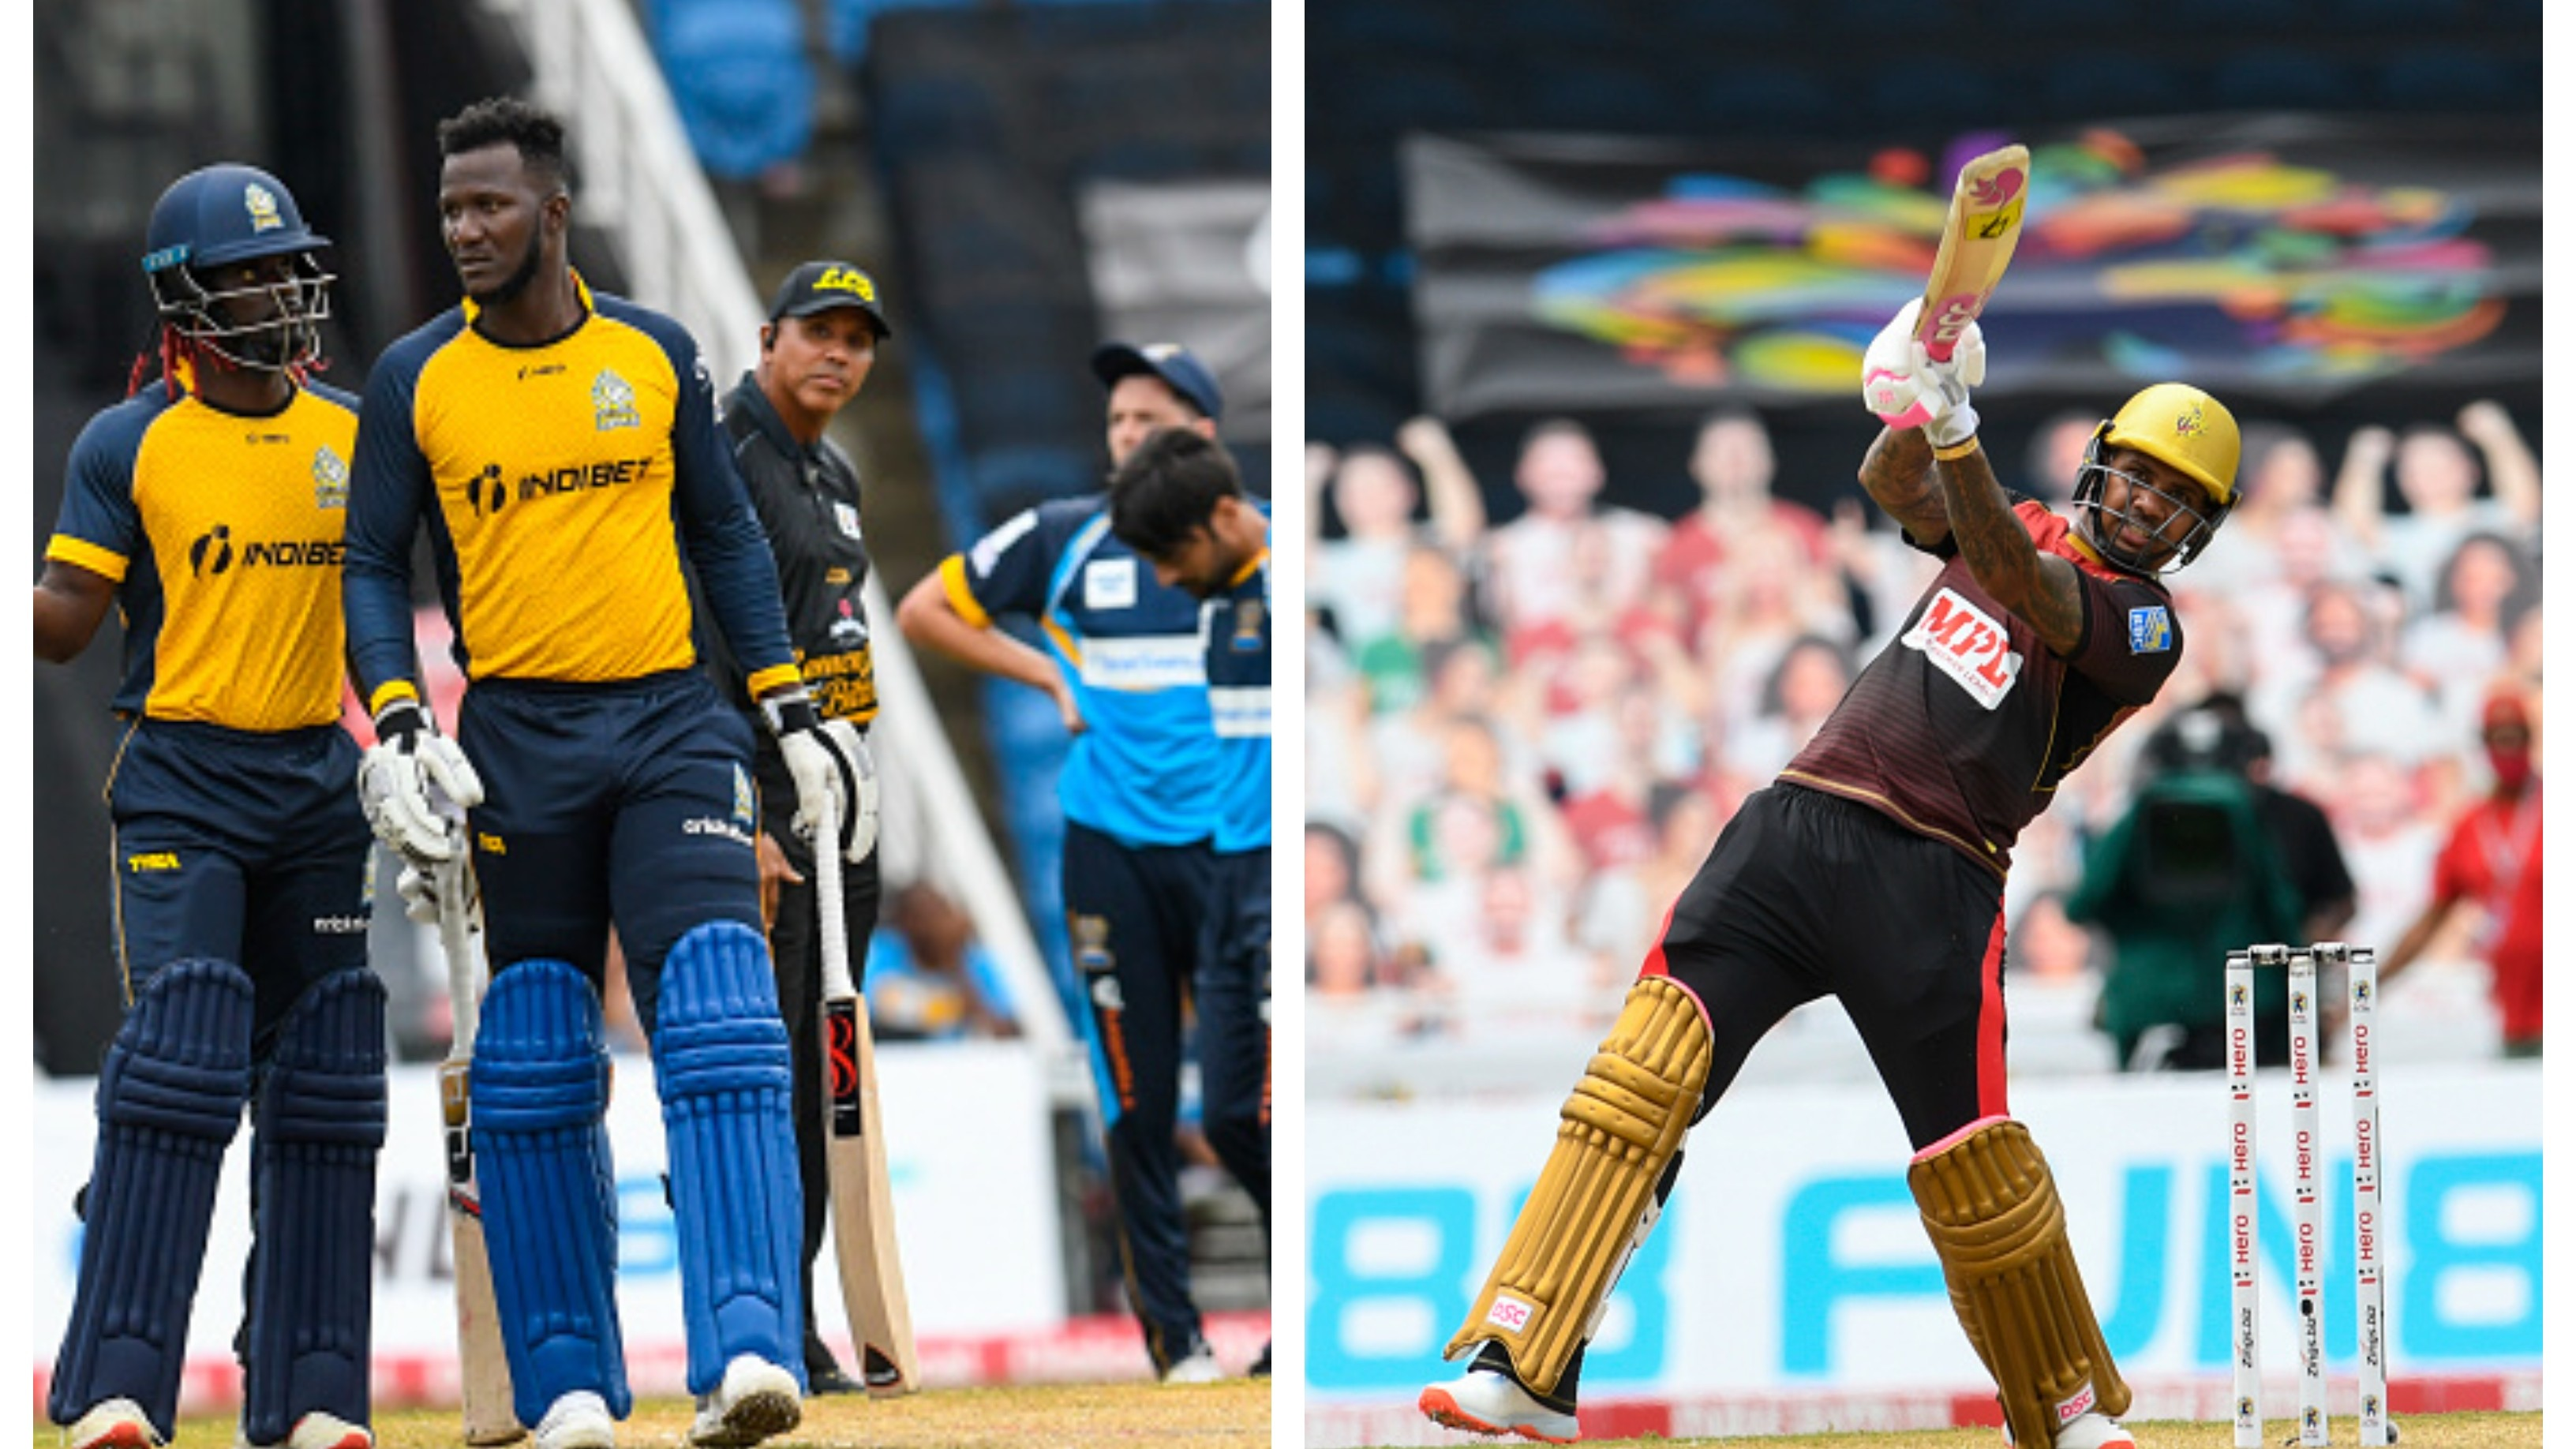 CPL 2020: Sunil Narine's blitz takes Knight Riders to win over Tallawahs; Zouks defeat Tridents